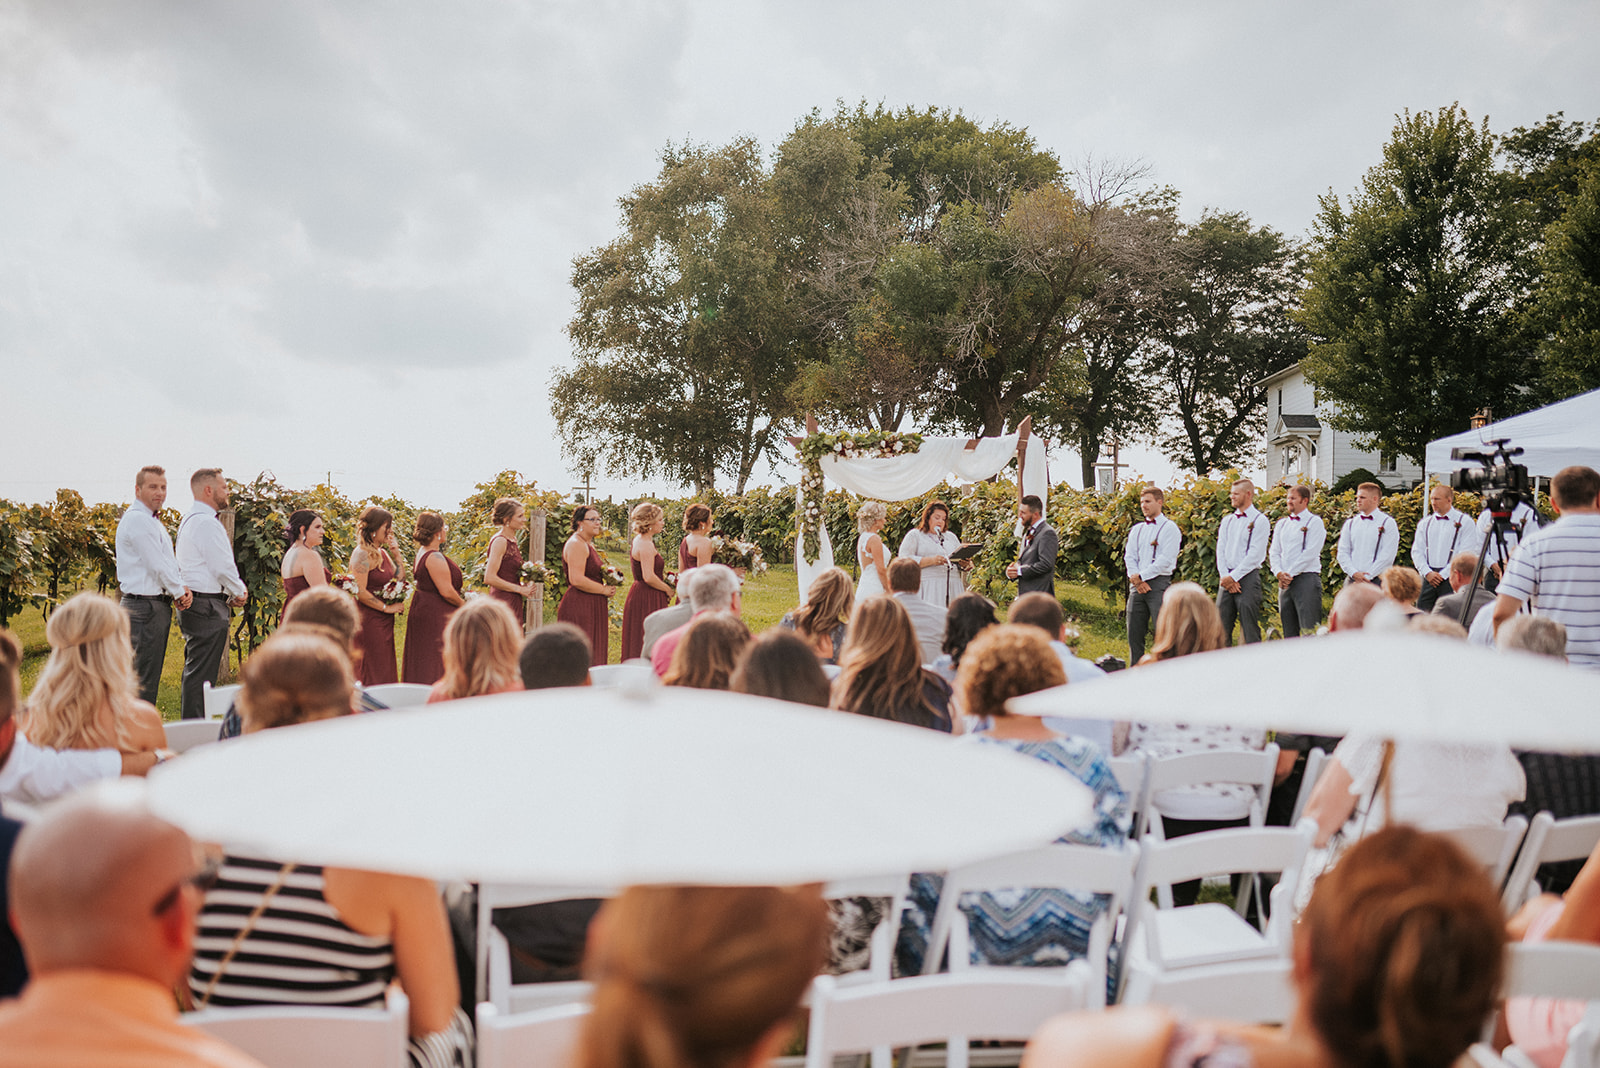 overthevineswisconsinwedding_0643.jpg